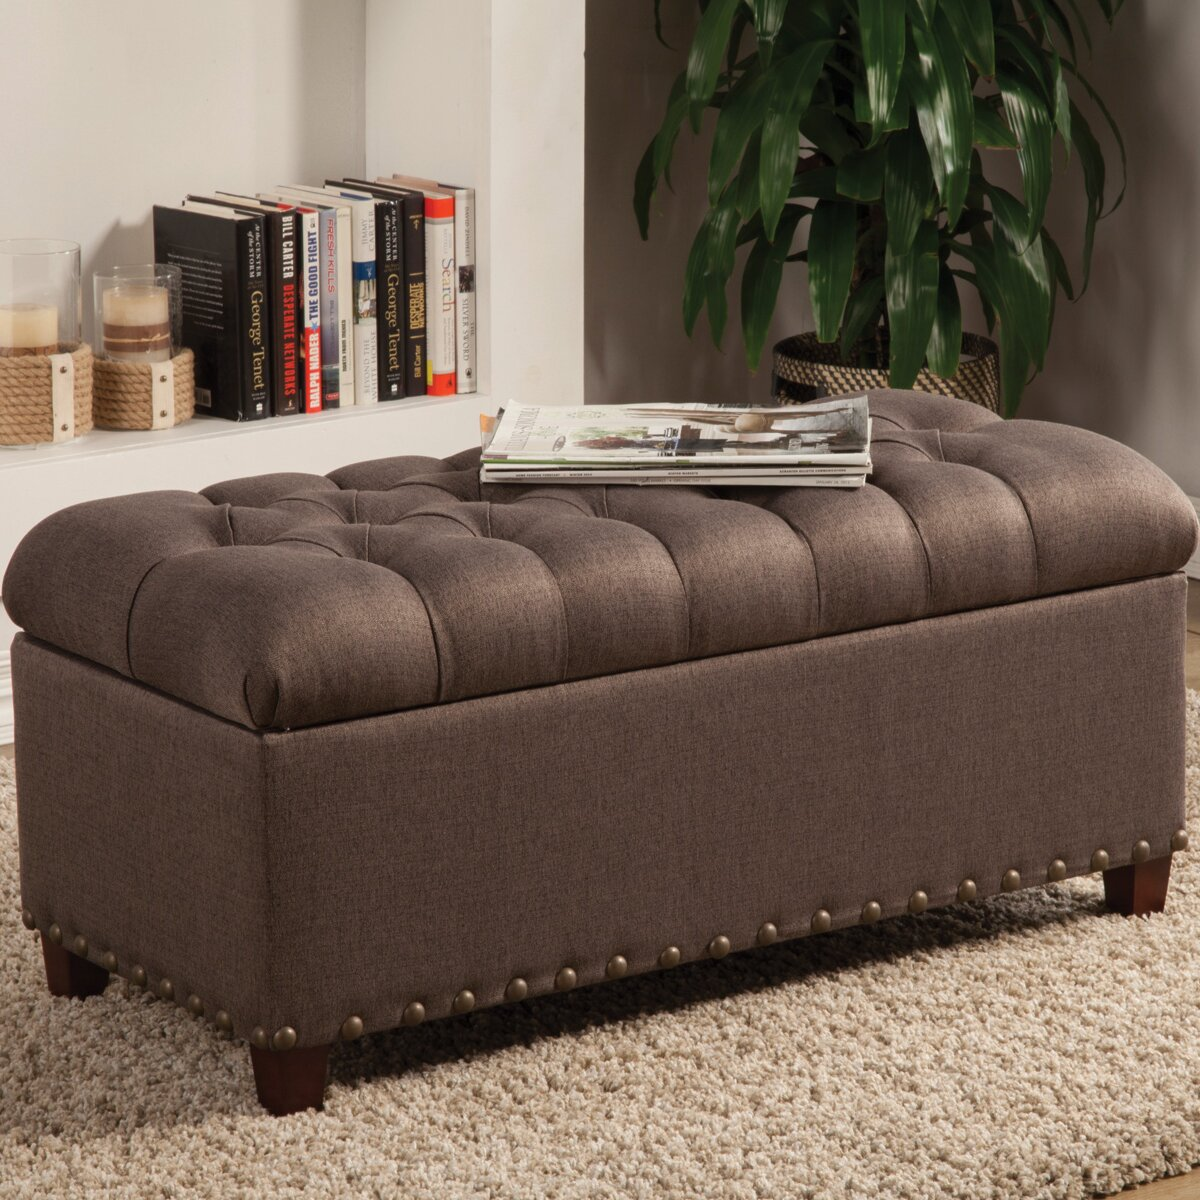 Bedroom Bench Storage Alcott Hill Henderson Upholstered Storage Bedroom Bench Reviews